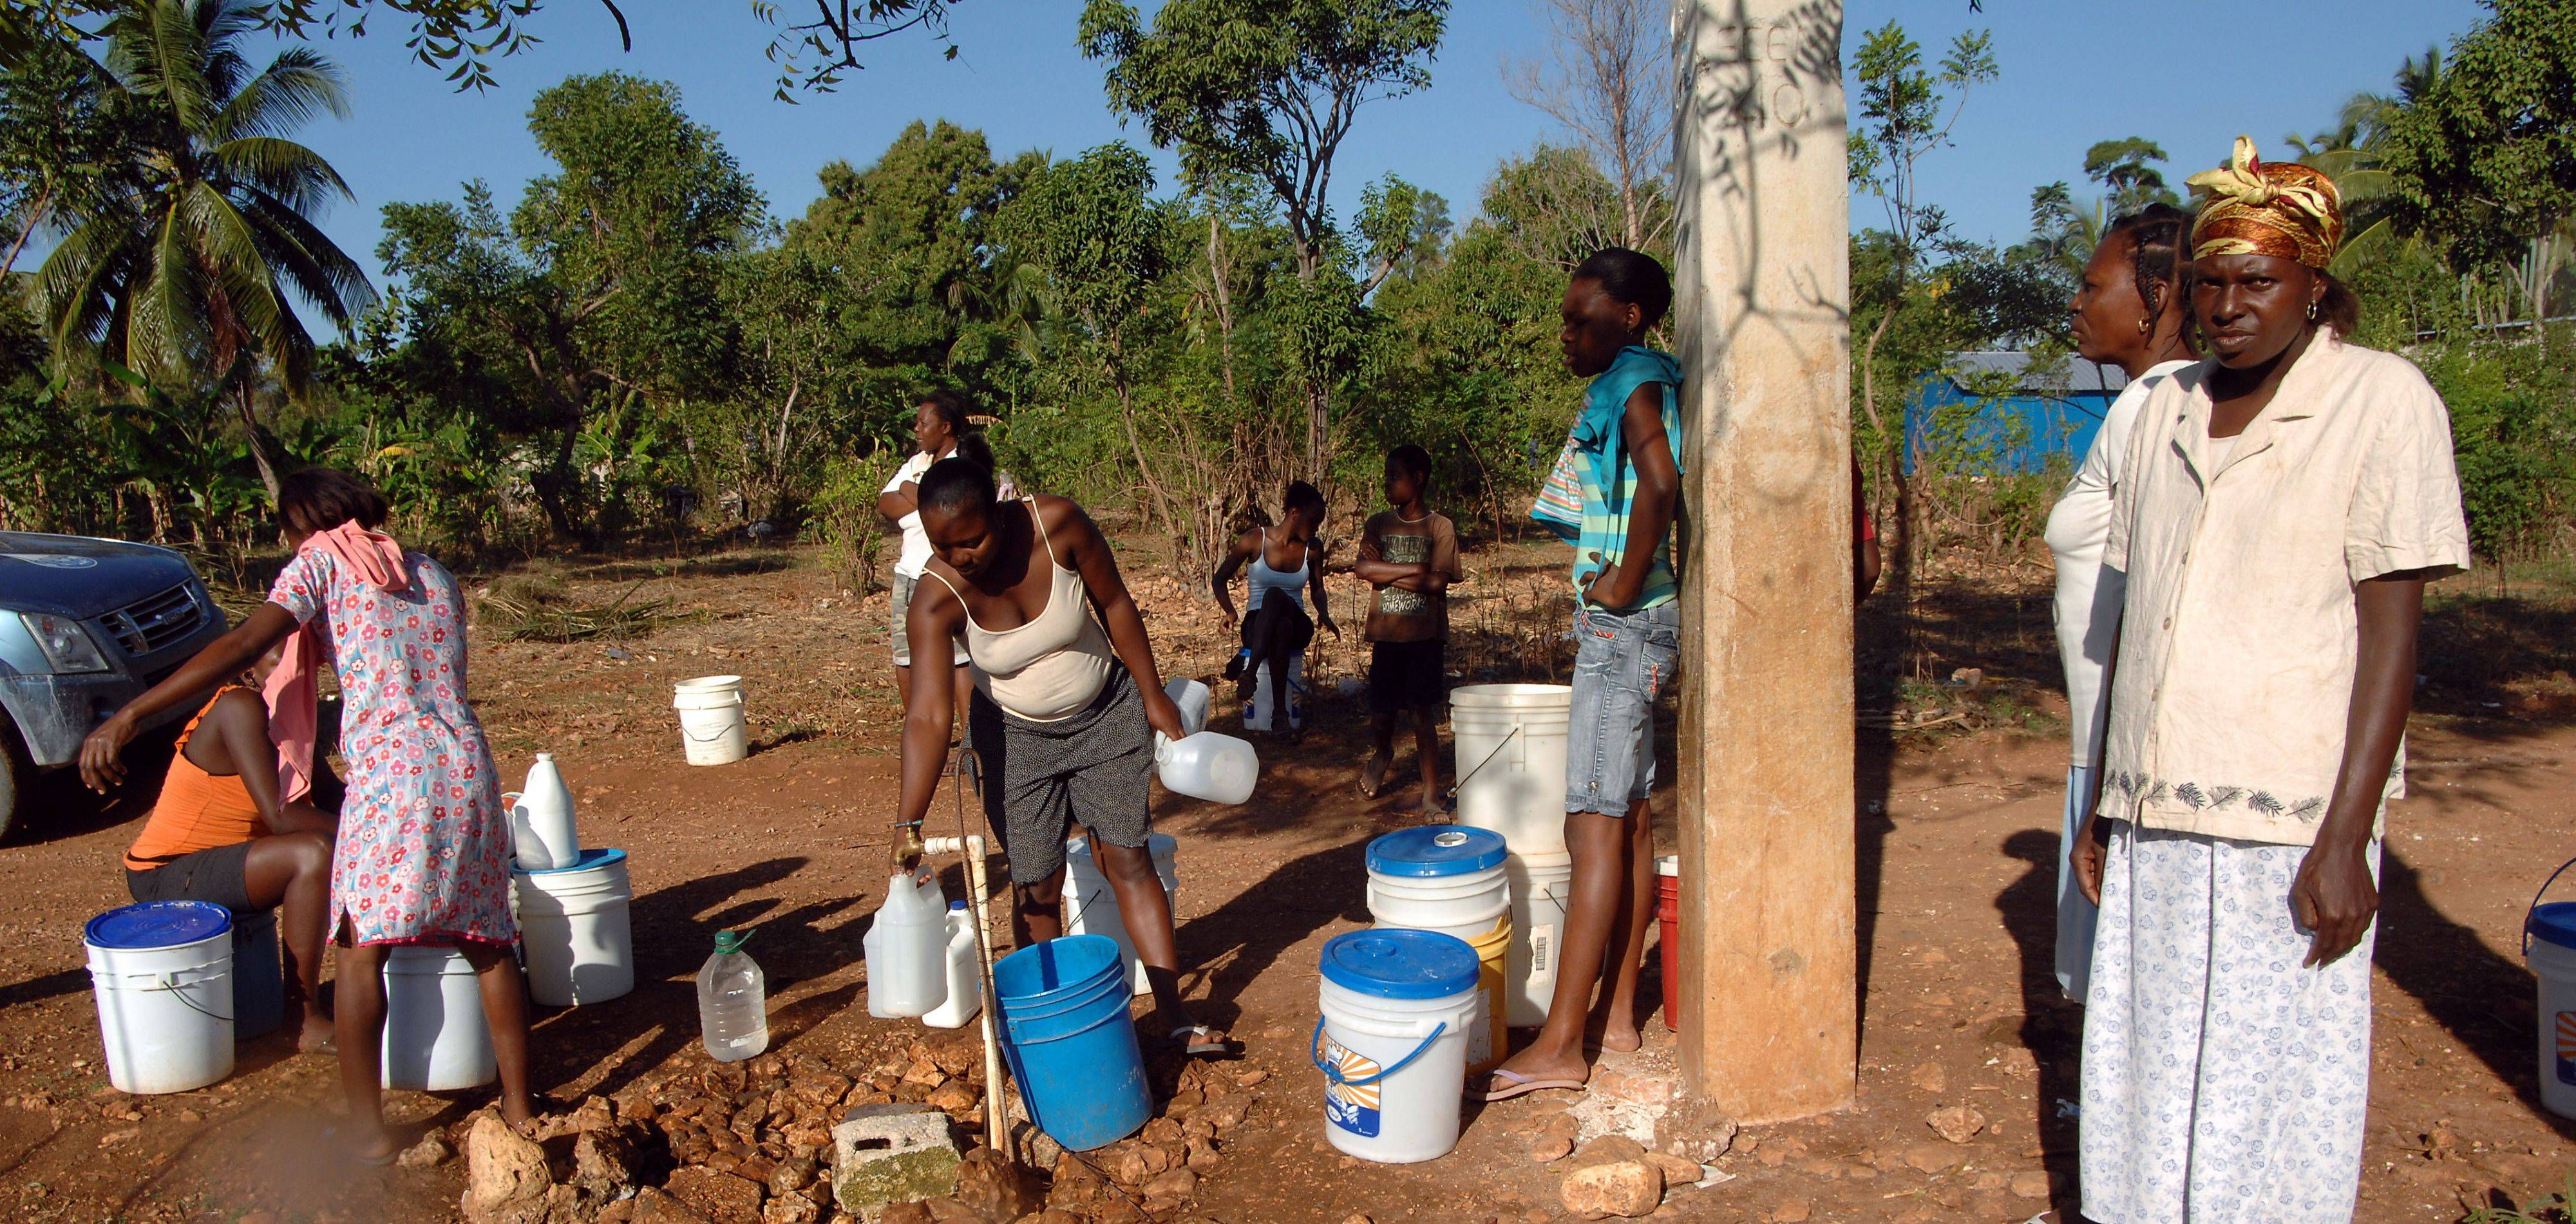 Haitian women gather at the only well for miles around to get their water supply for cooking, drinking and washing clothes. The well tested positive for the E-Coli bacteria.